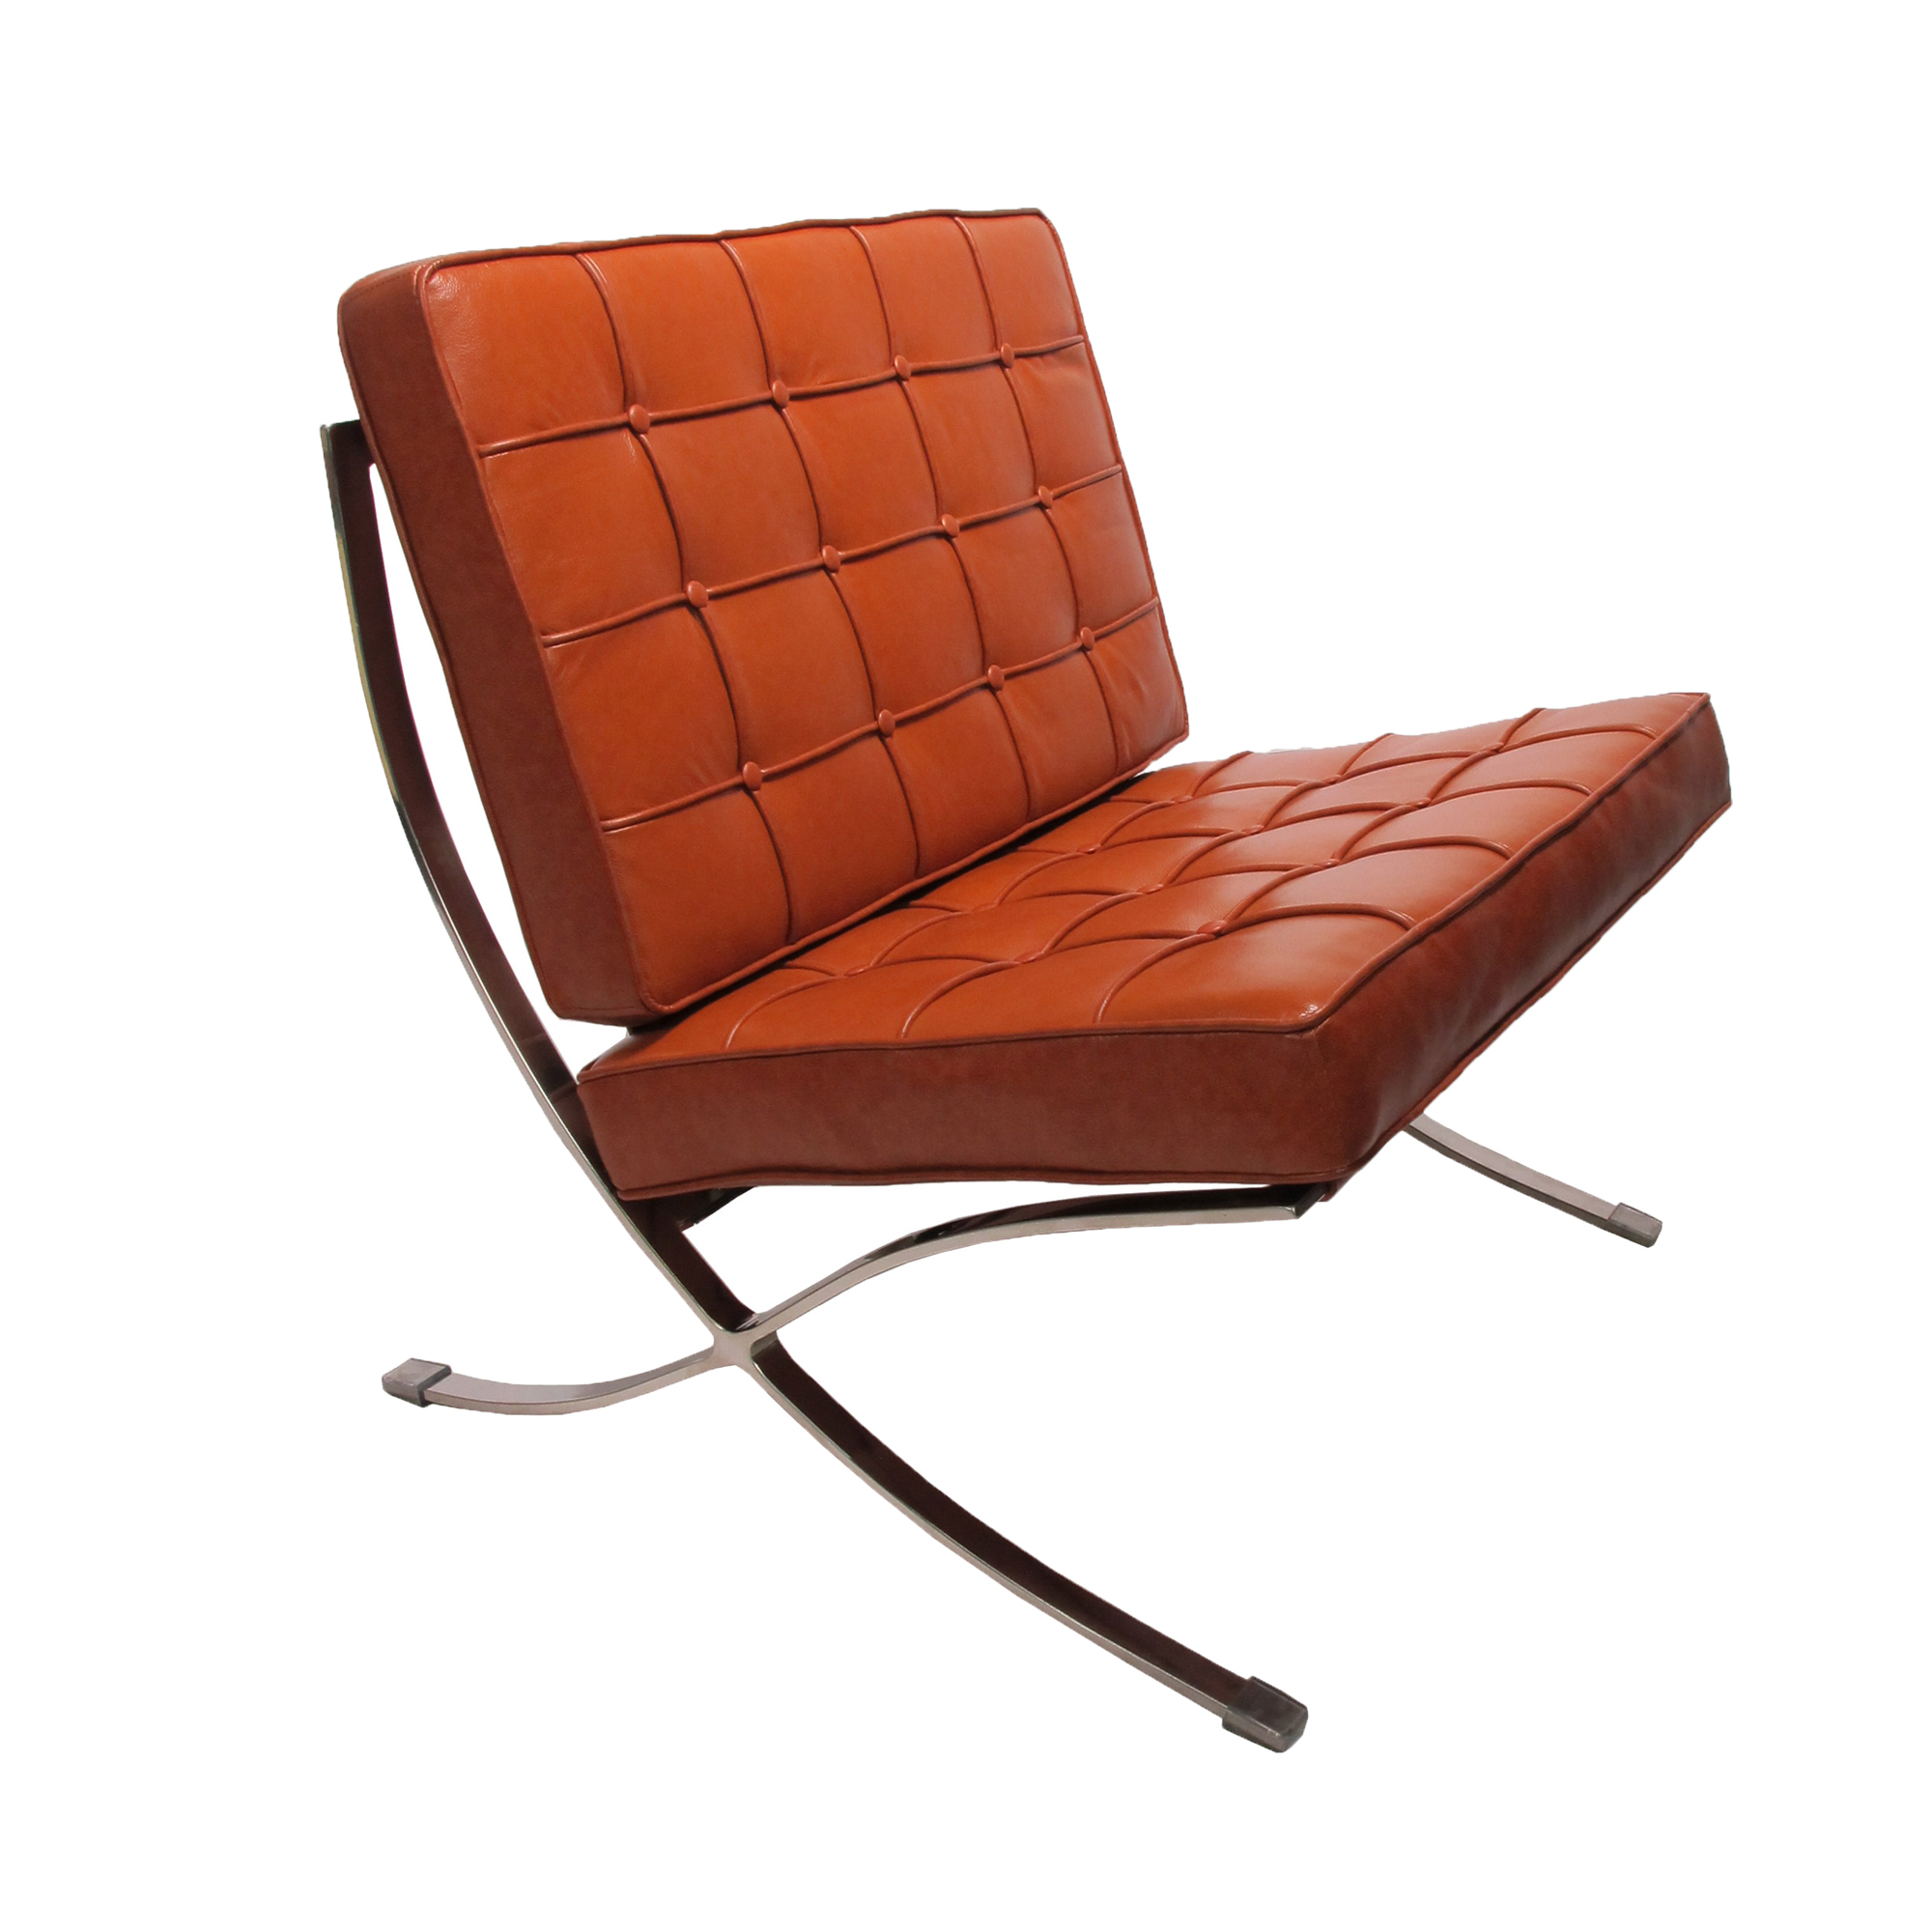 Barcelona Lounge Chair Replica Ludwig Mies Van Der Rohe Barcelona Lounge Set